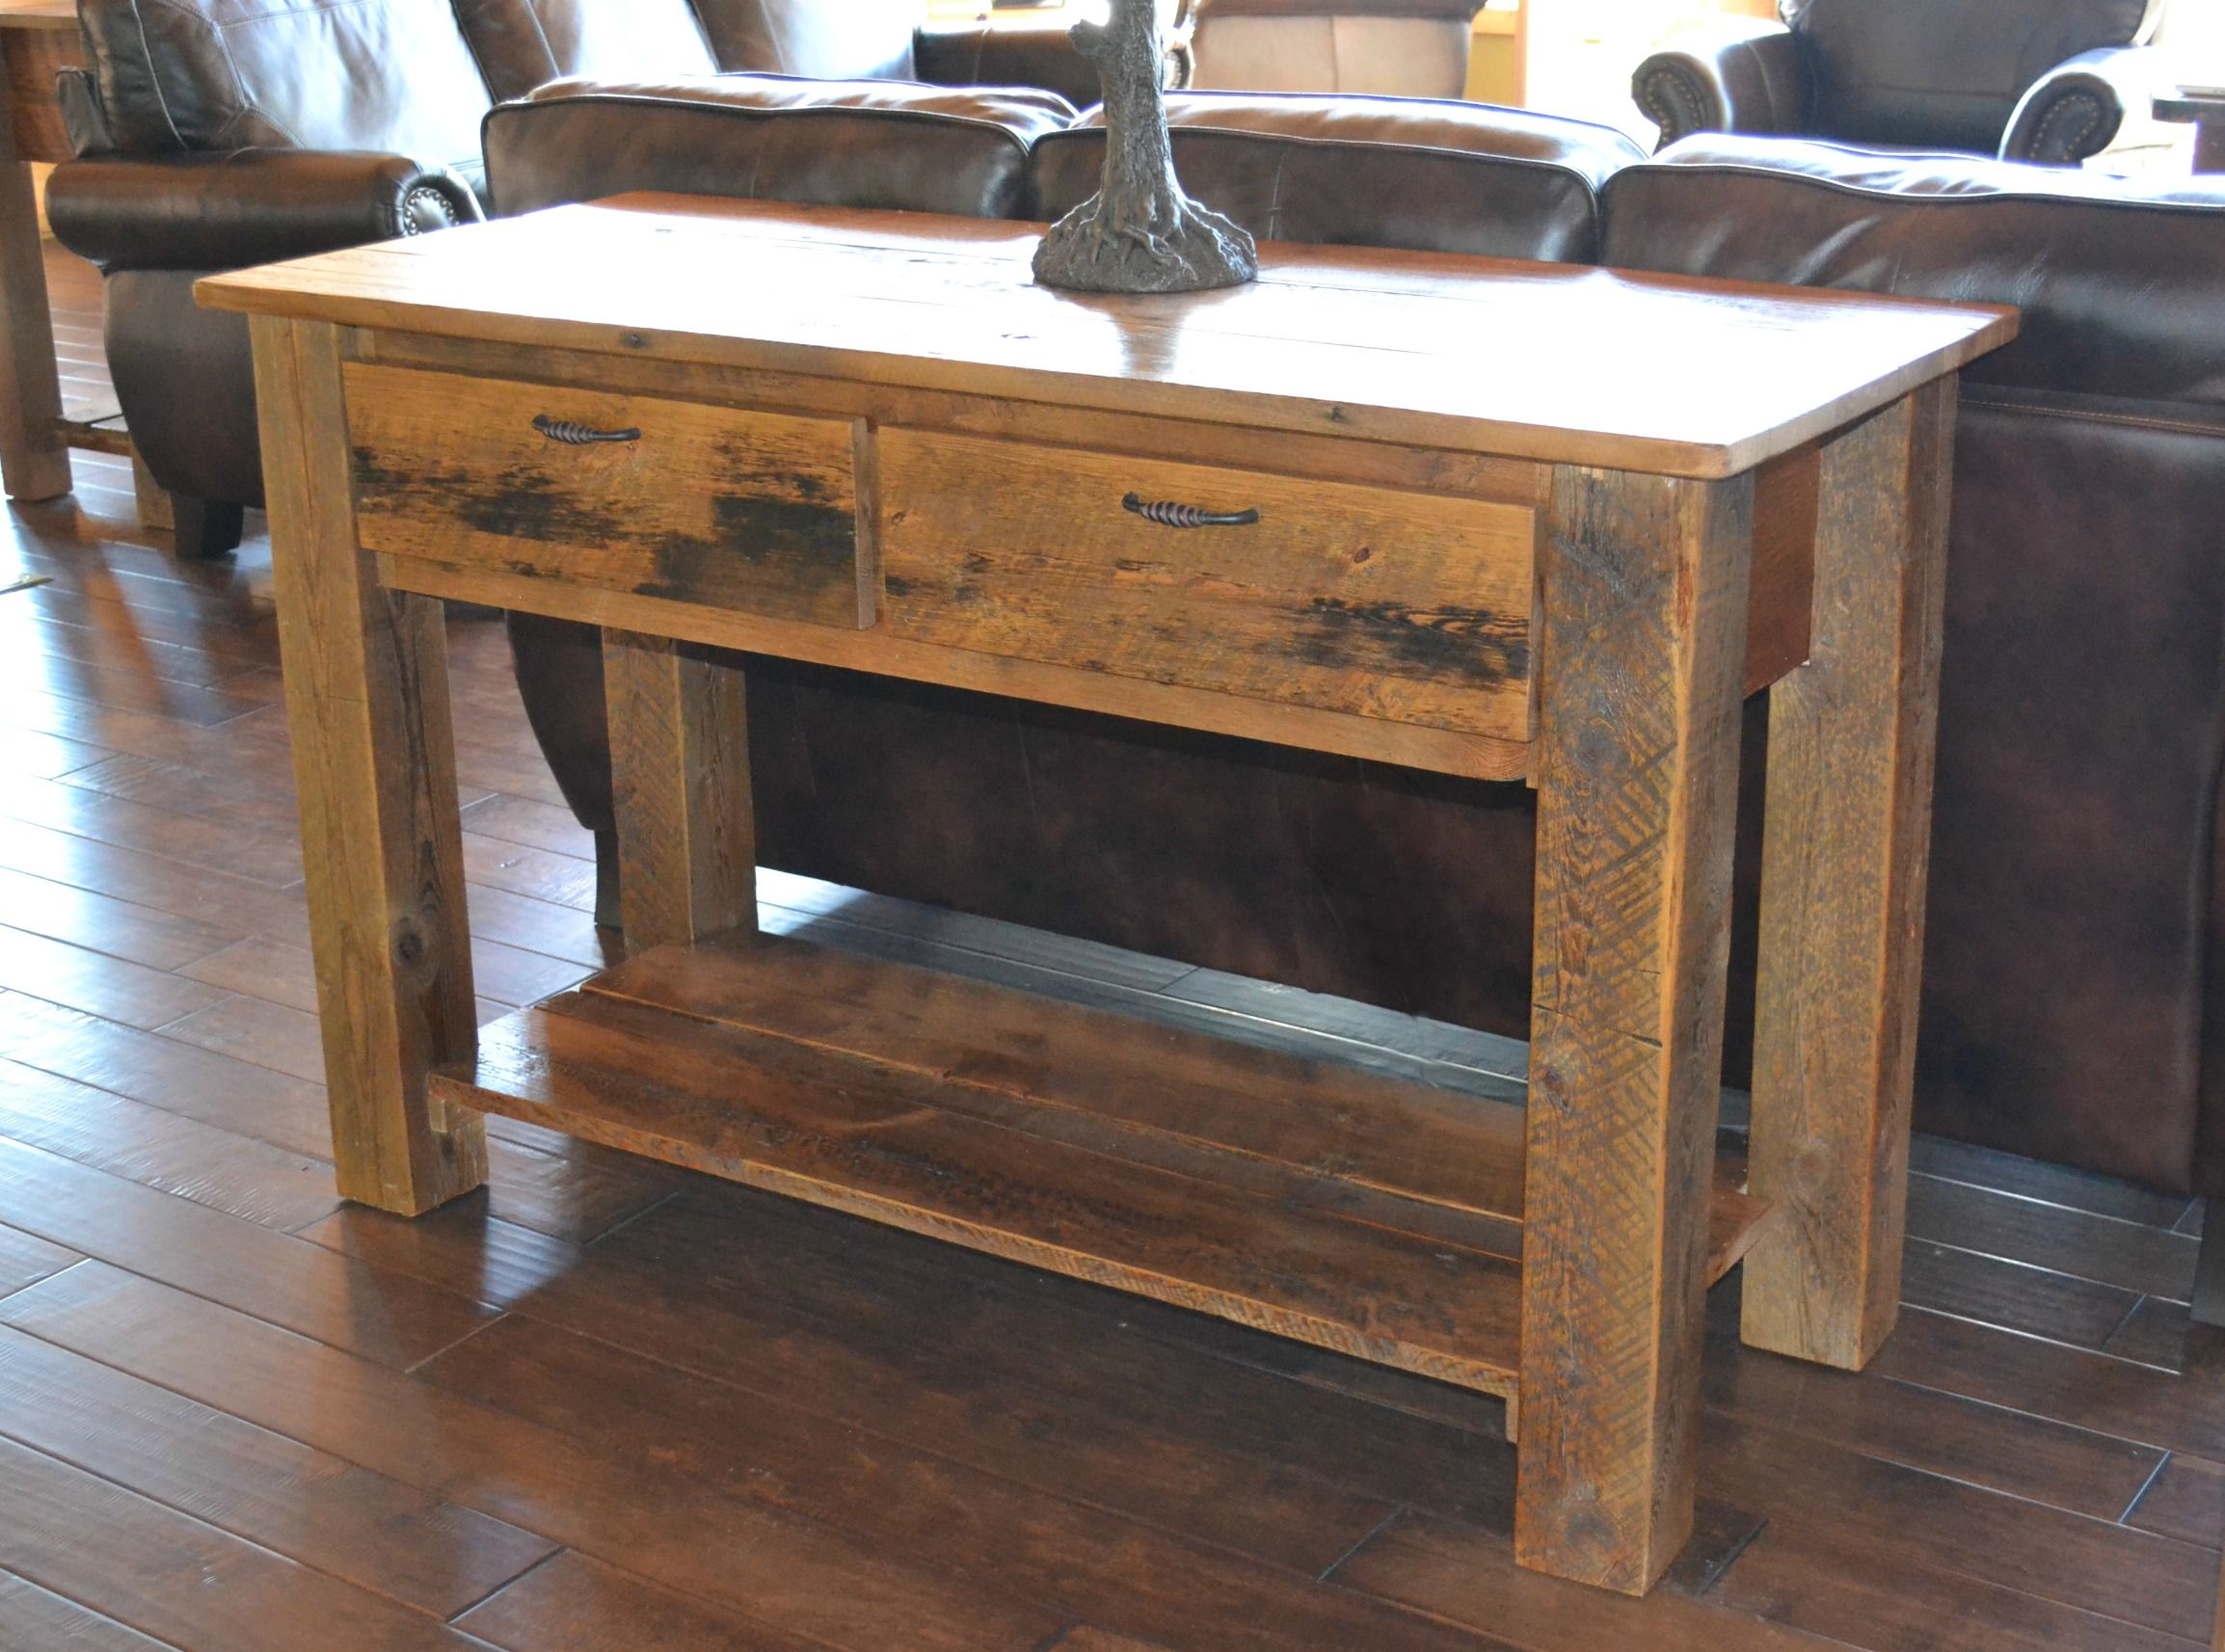 Reclaimed barn wood reclaimed barn wood furniture Pictures of rustic furniture